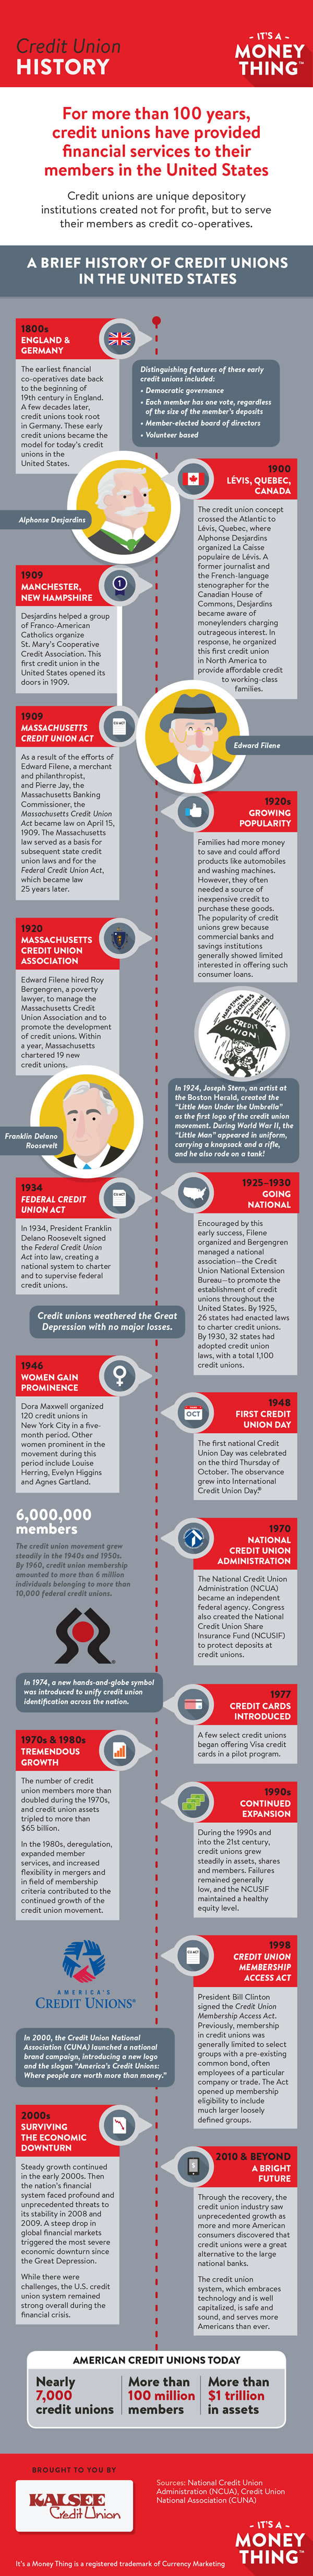 Credit Union History infographic, click for transcription